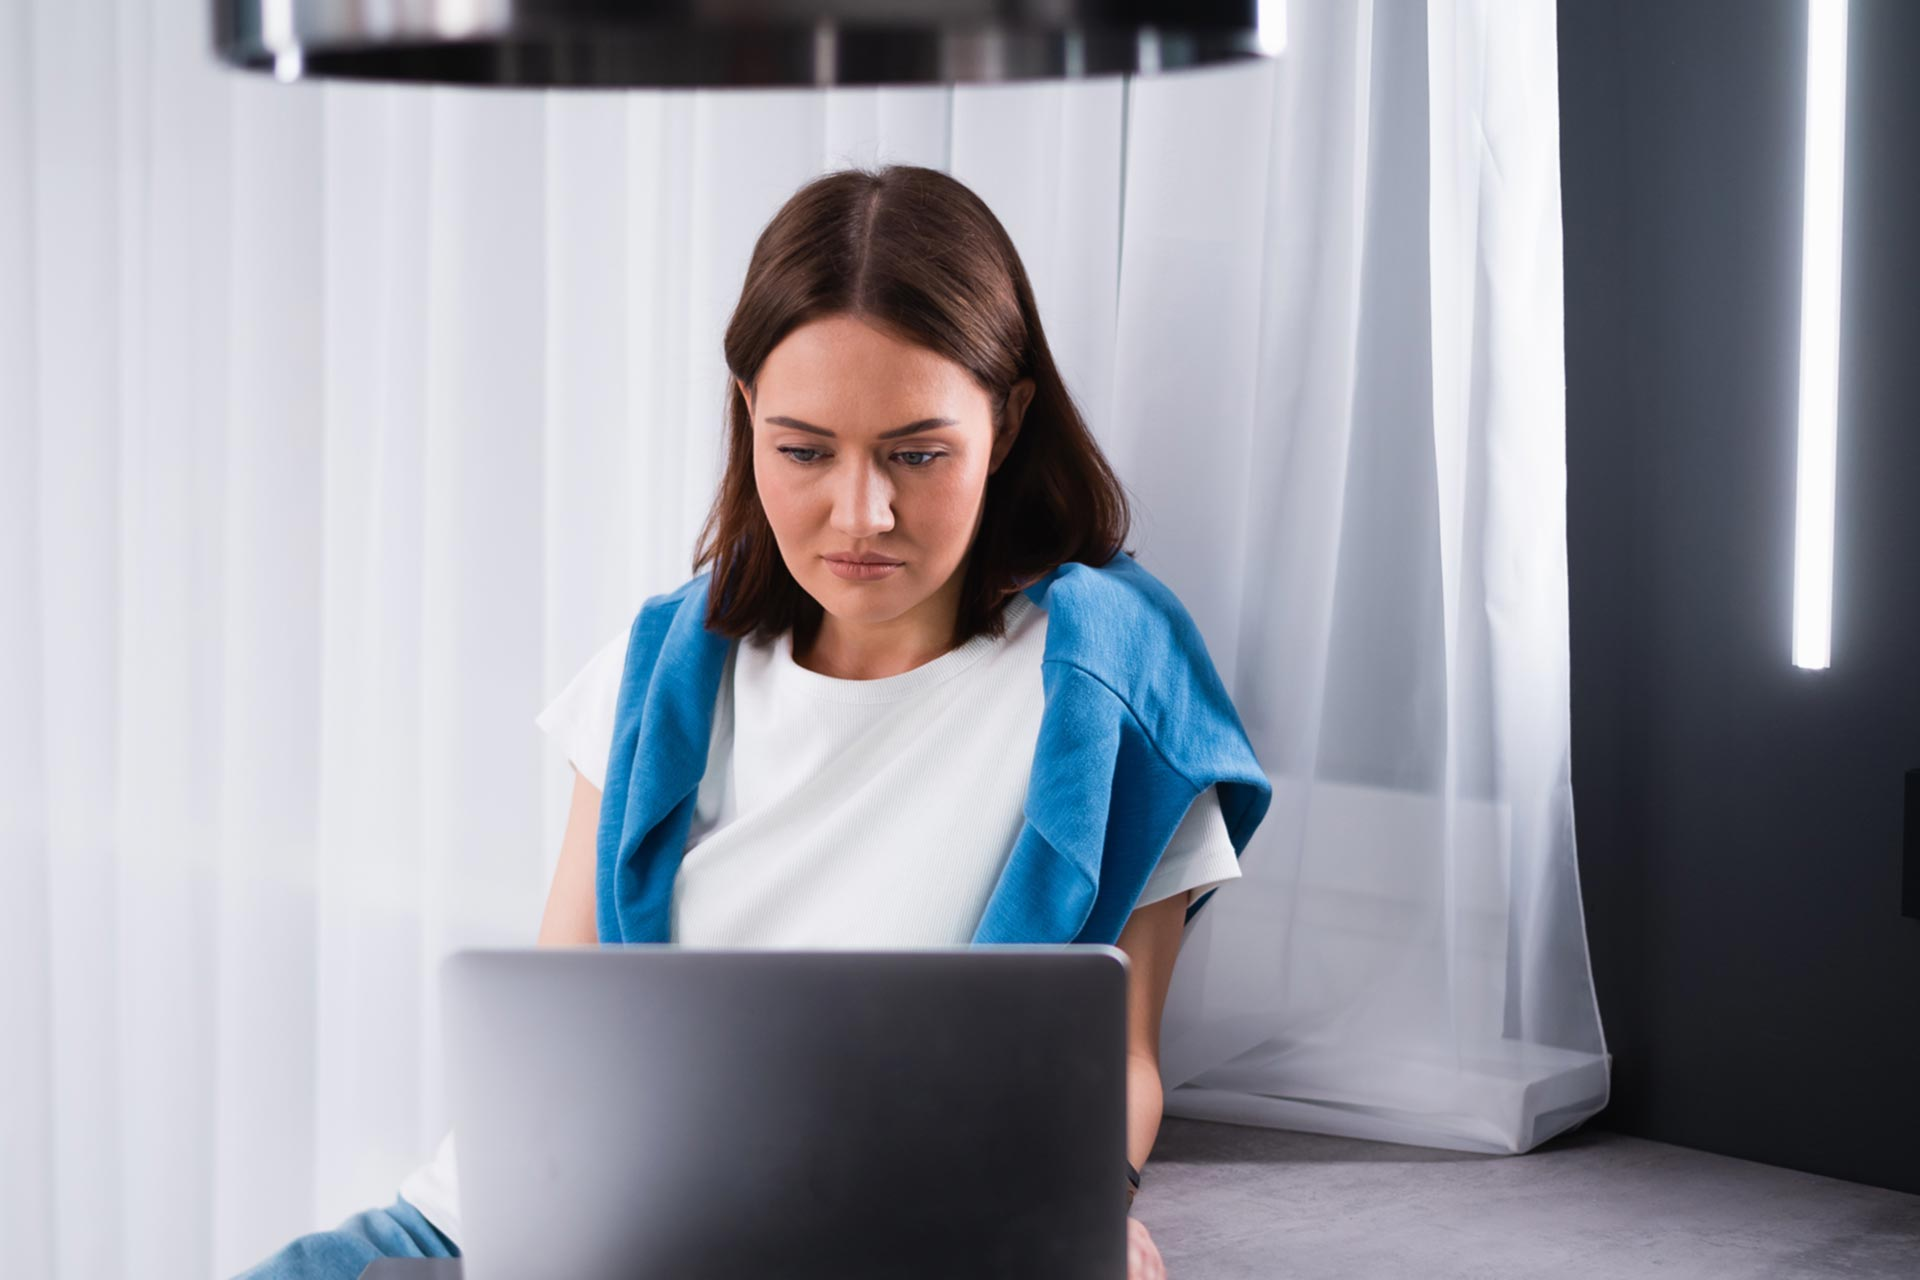 Woman updating her business name on her laptop